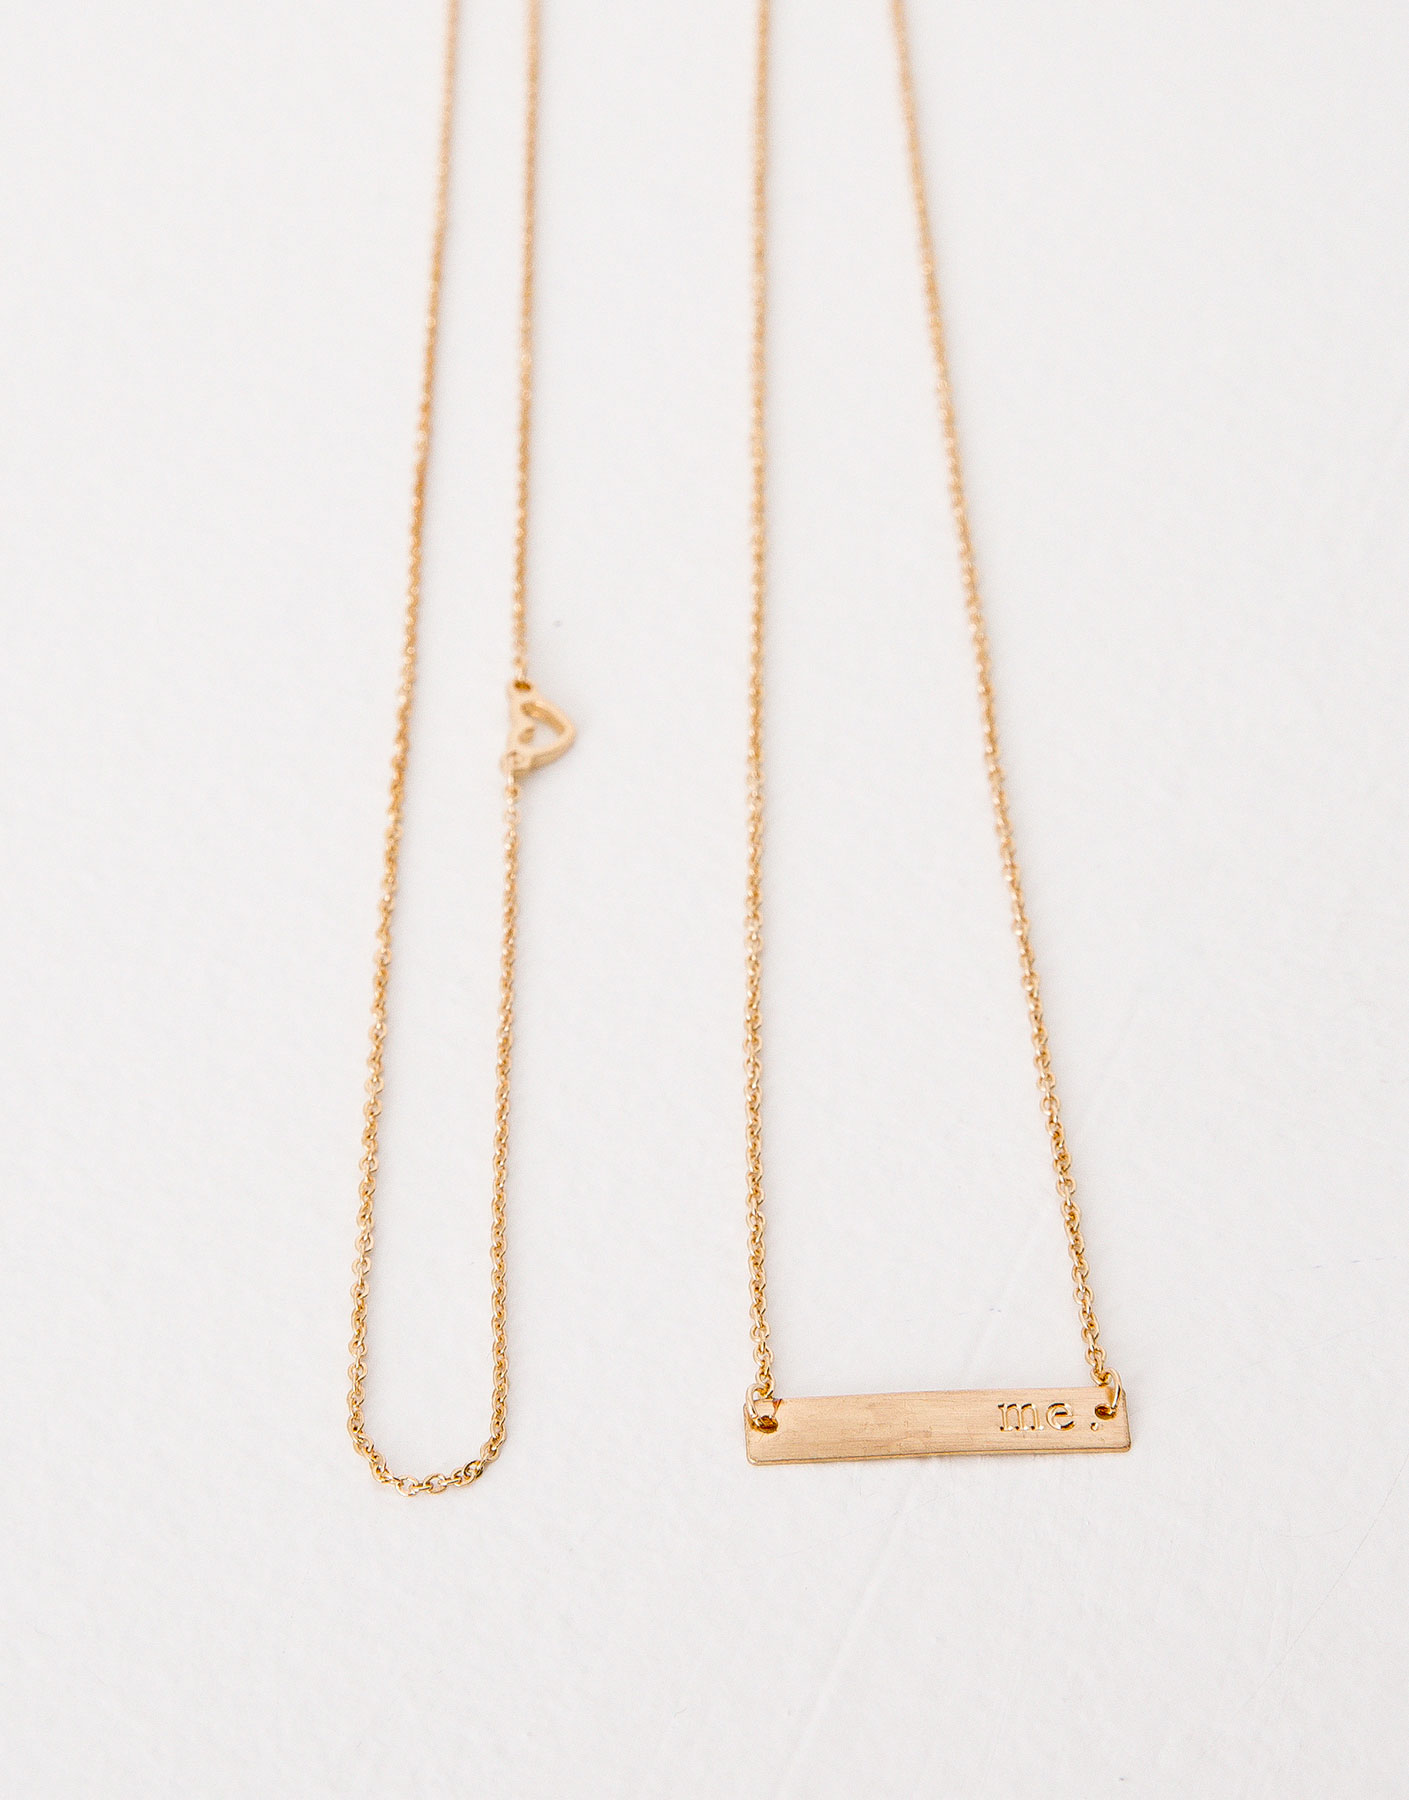 2-pack of love me necklaces